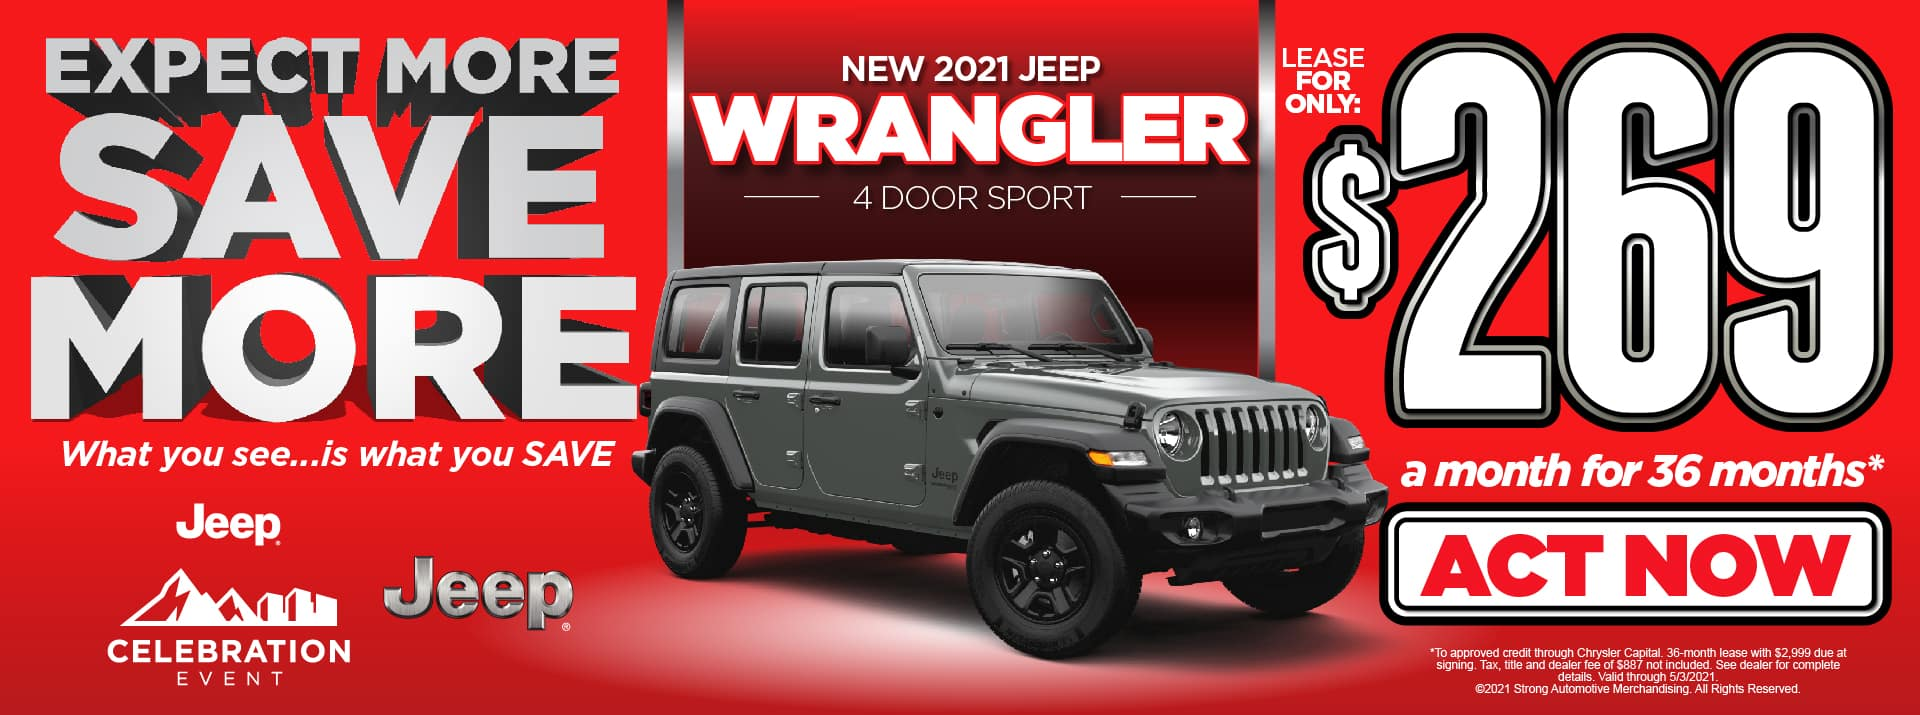 NEW 2021 JEEP WRANGLER LEASE FOR $269/MO* ACT NOW